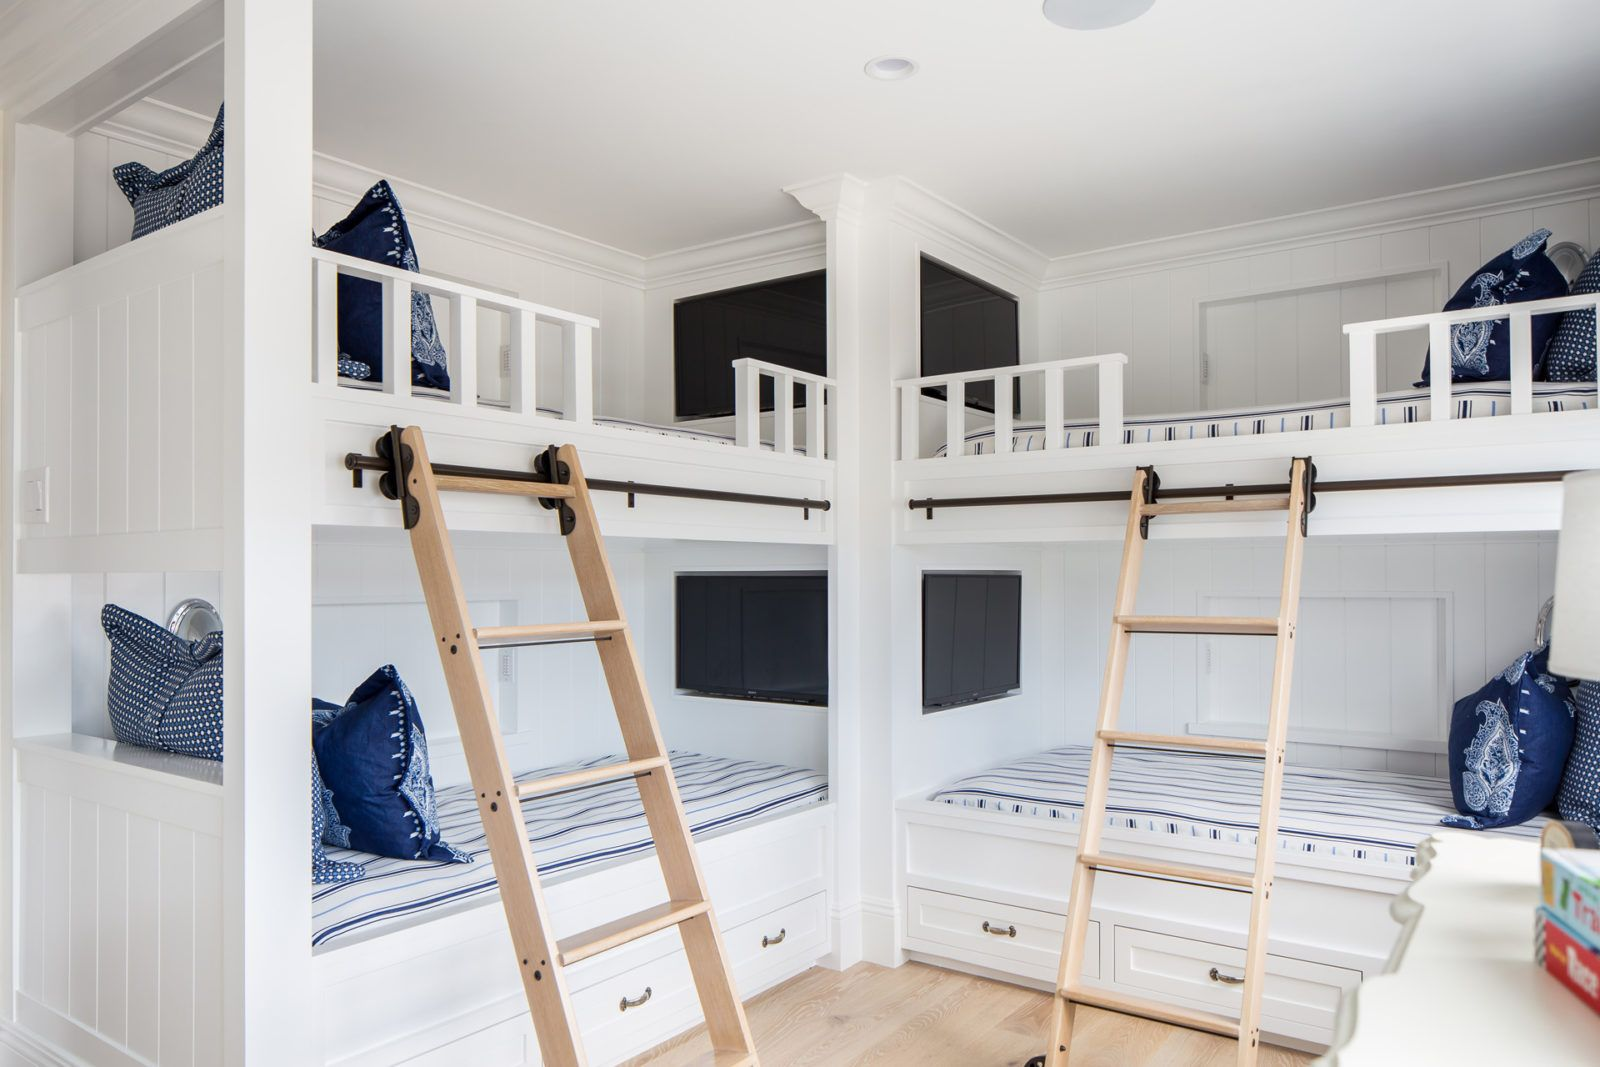 Wow Each Bunk Bed Has Their Own Tv Beach House Bunk Room Corner Bunk Beds Bunk Beds Built In Bunk Beds